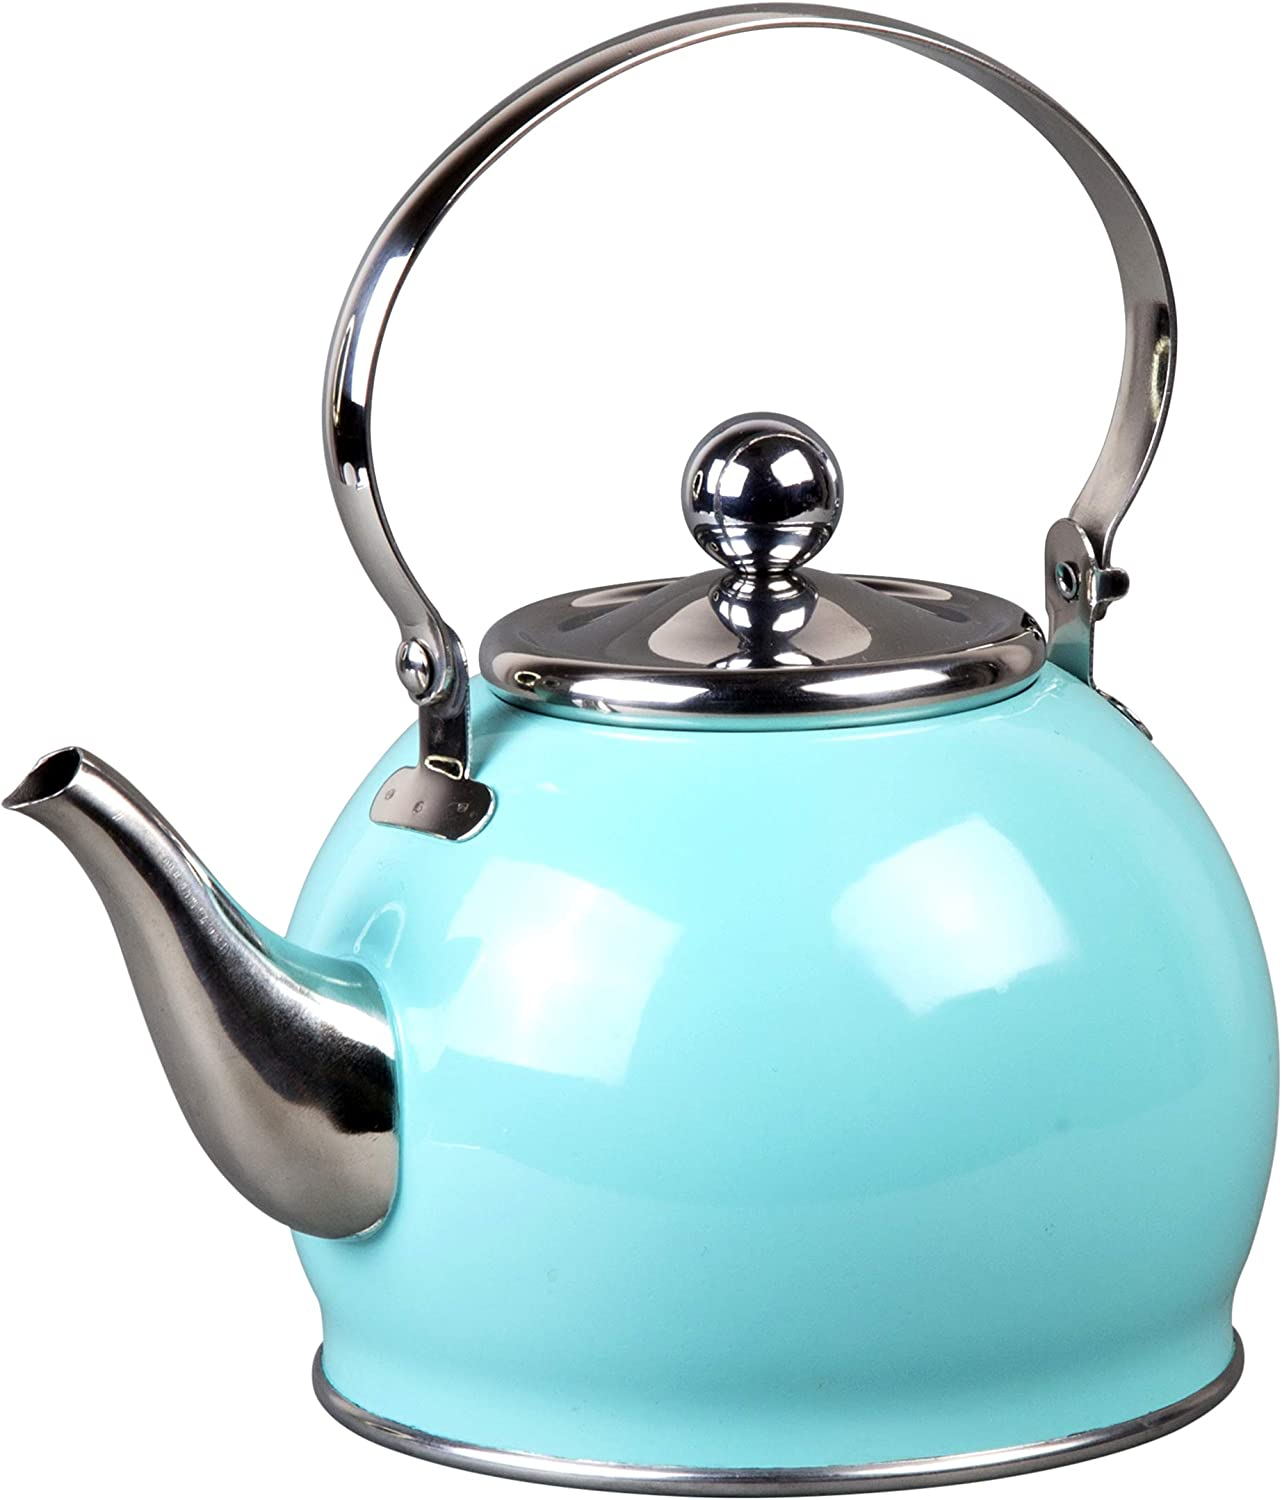 Creative Home Royal Stainless Steel Tea Kettle with Removable Infuser Basket, Folding Handle, 1.0 Quart, Aqua Sky Finish